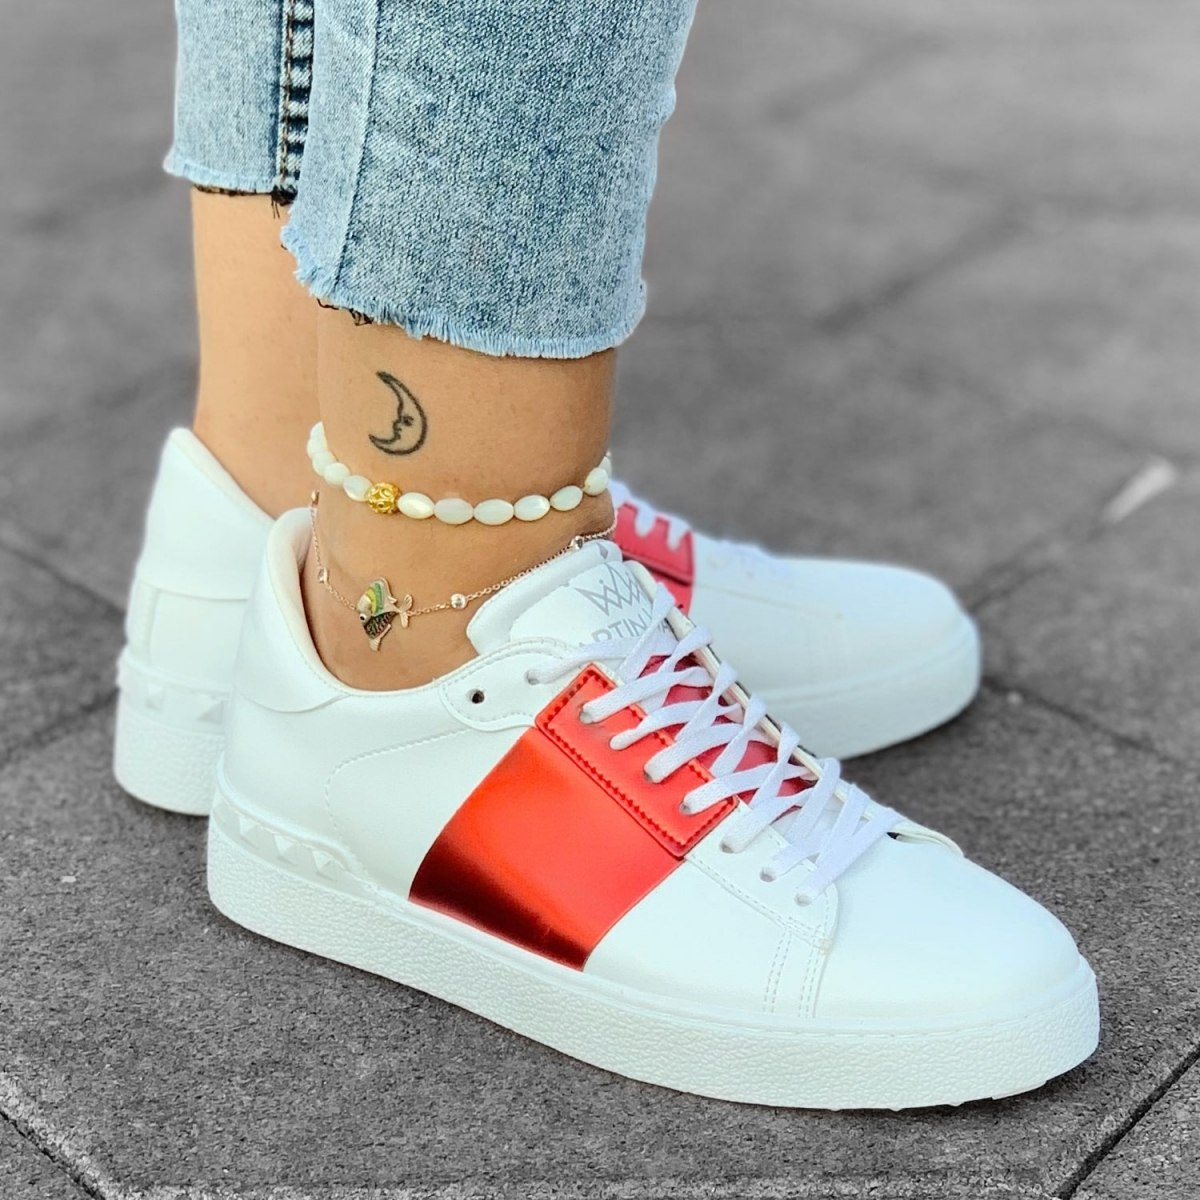 Martin Valen Women's Red Striped Lace-up Sneakers White